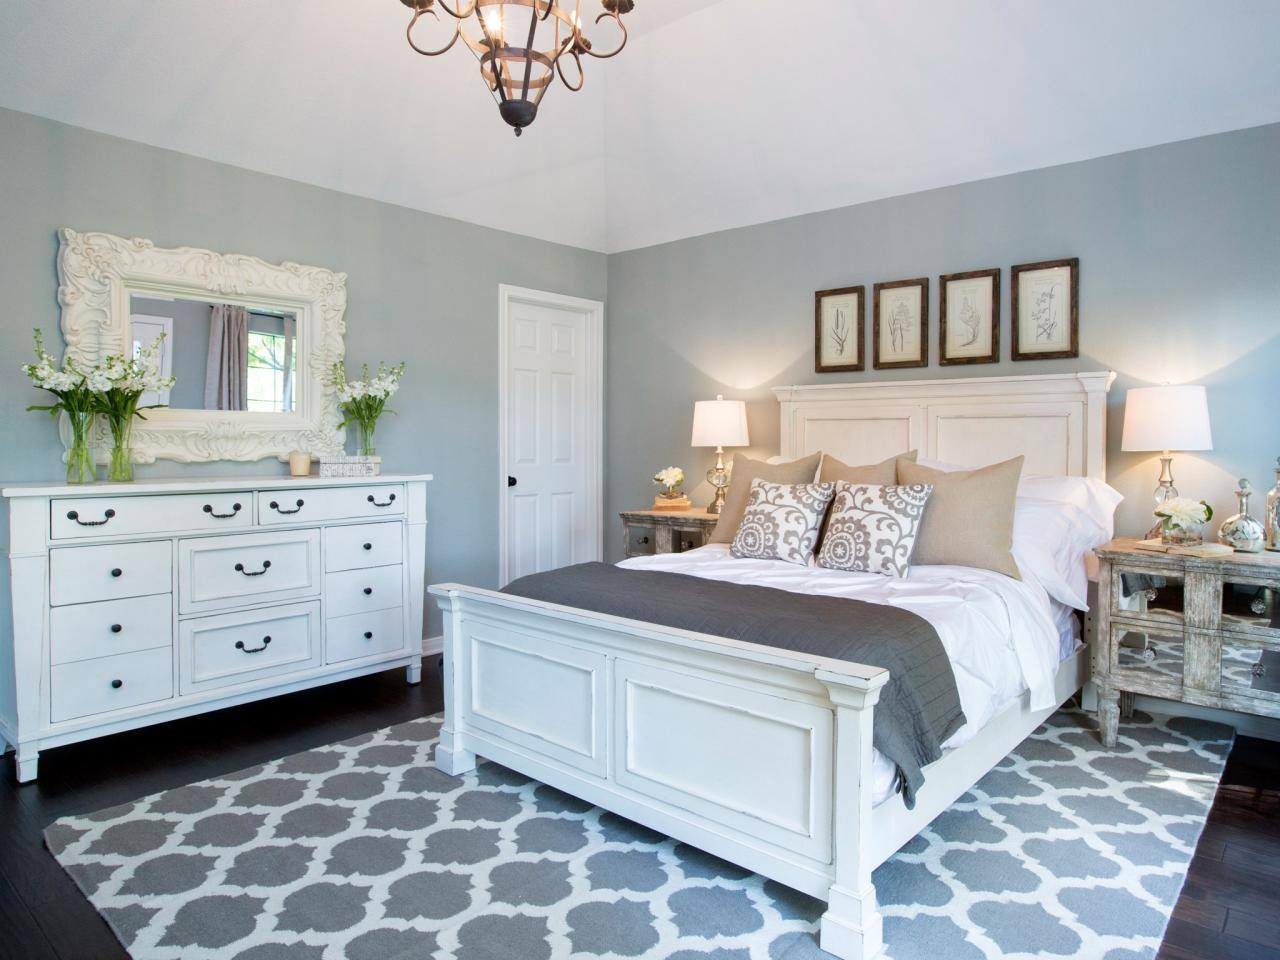 Amazing Best 25 Gray Bedroom Ideas On Pinterest Grey Room Fall Door Decor pertaining to Bedroom Gray